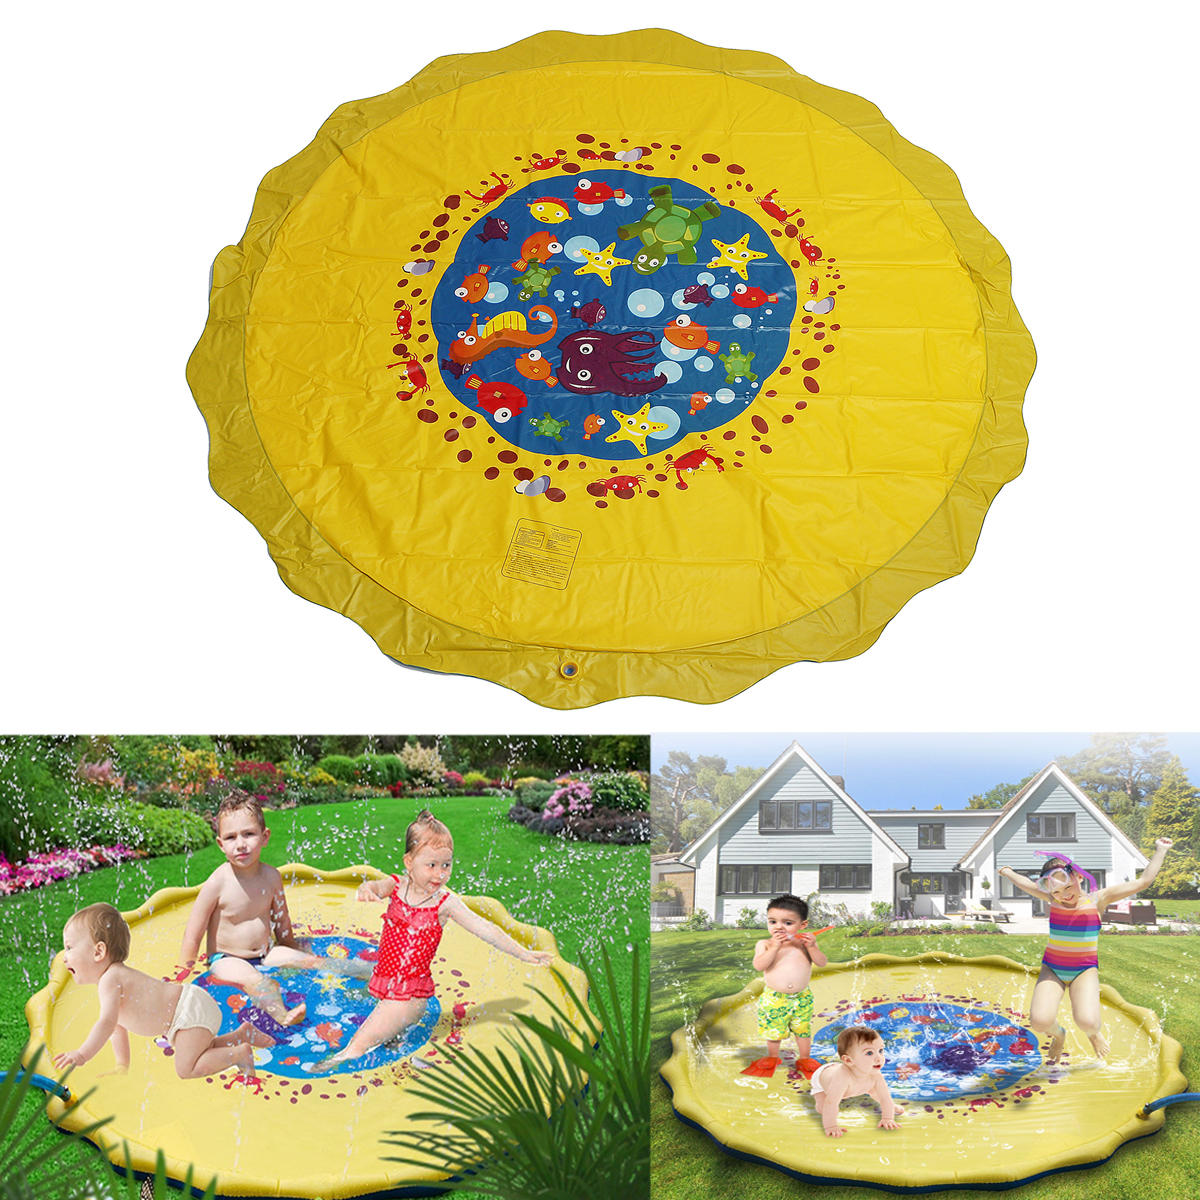 170cm Outdoor Inflatable Sprinkle Splash Mat Toddler Baby Kid Garden Water Spray Toys Play Pool Cod